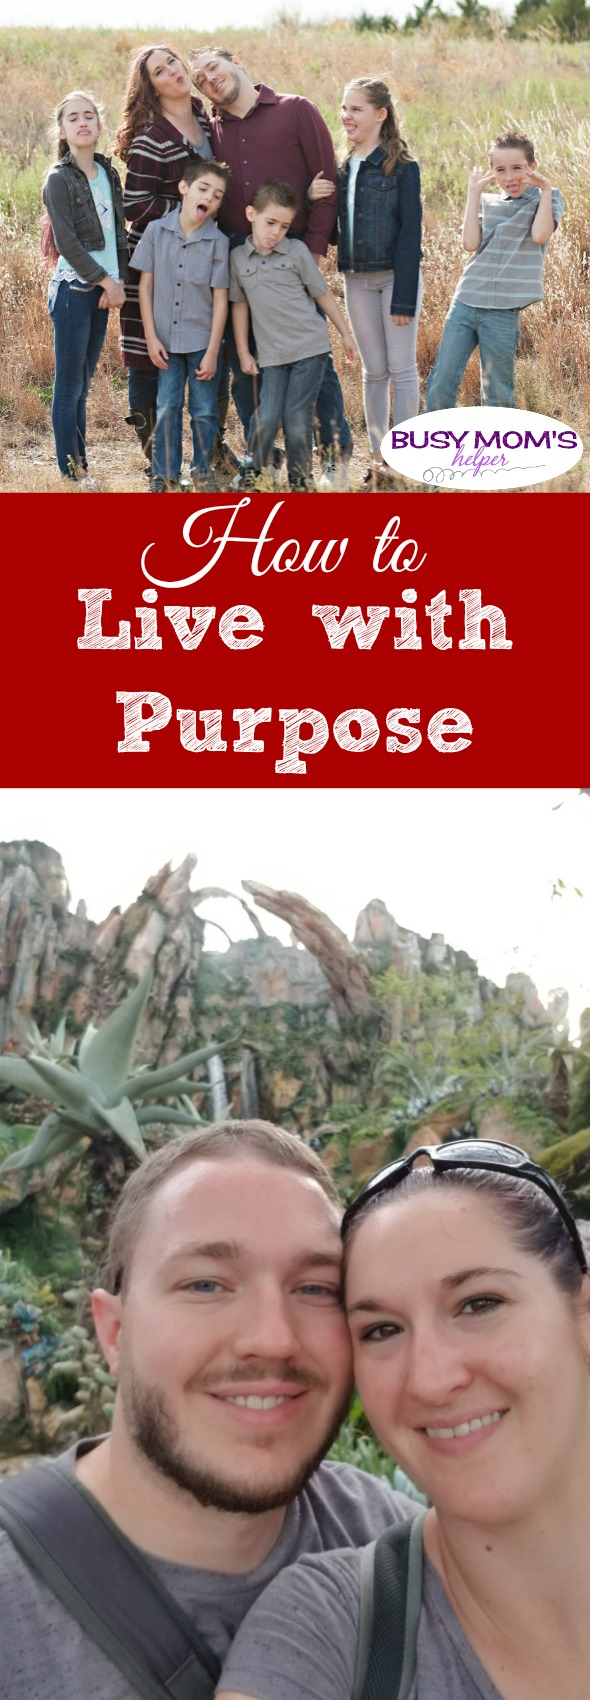 How to Live with Purpose #parenting #mom #lifehelp